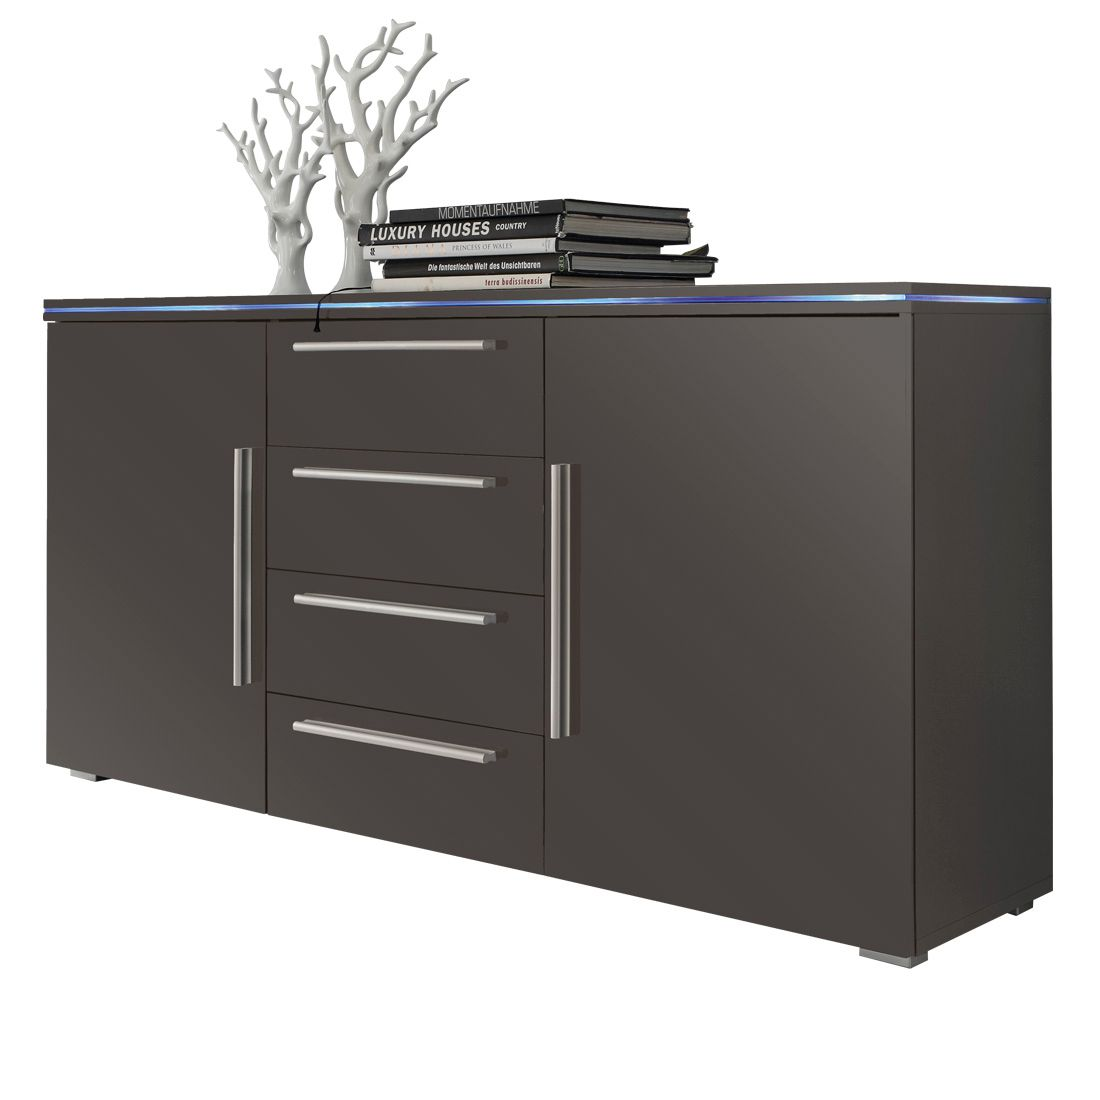 stripe sideboard grau hochglanz mit 2 t ren und 4 schubk sten. Black Bedroom Furniture Sets. Home Design Ideas